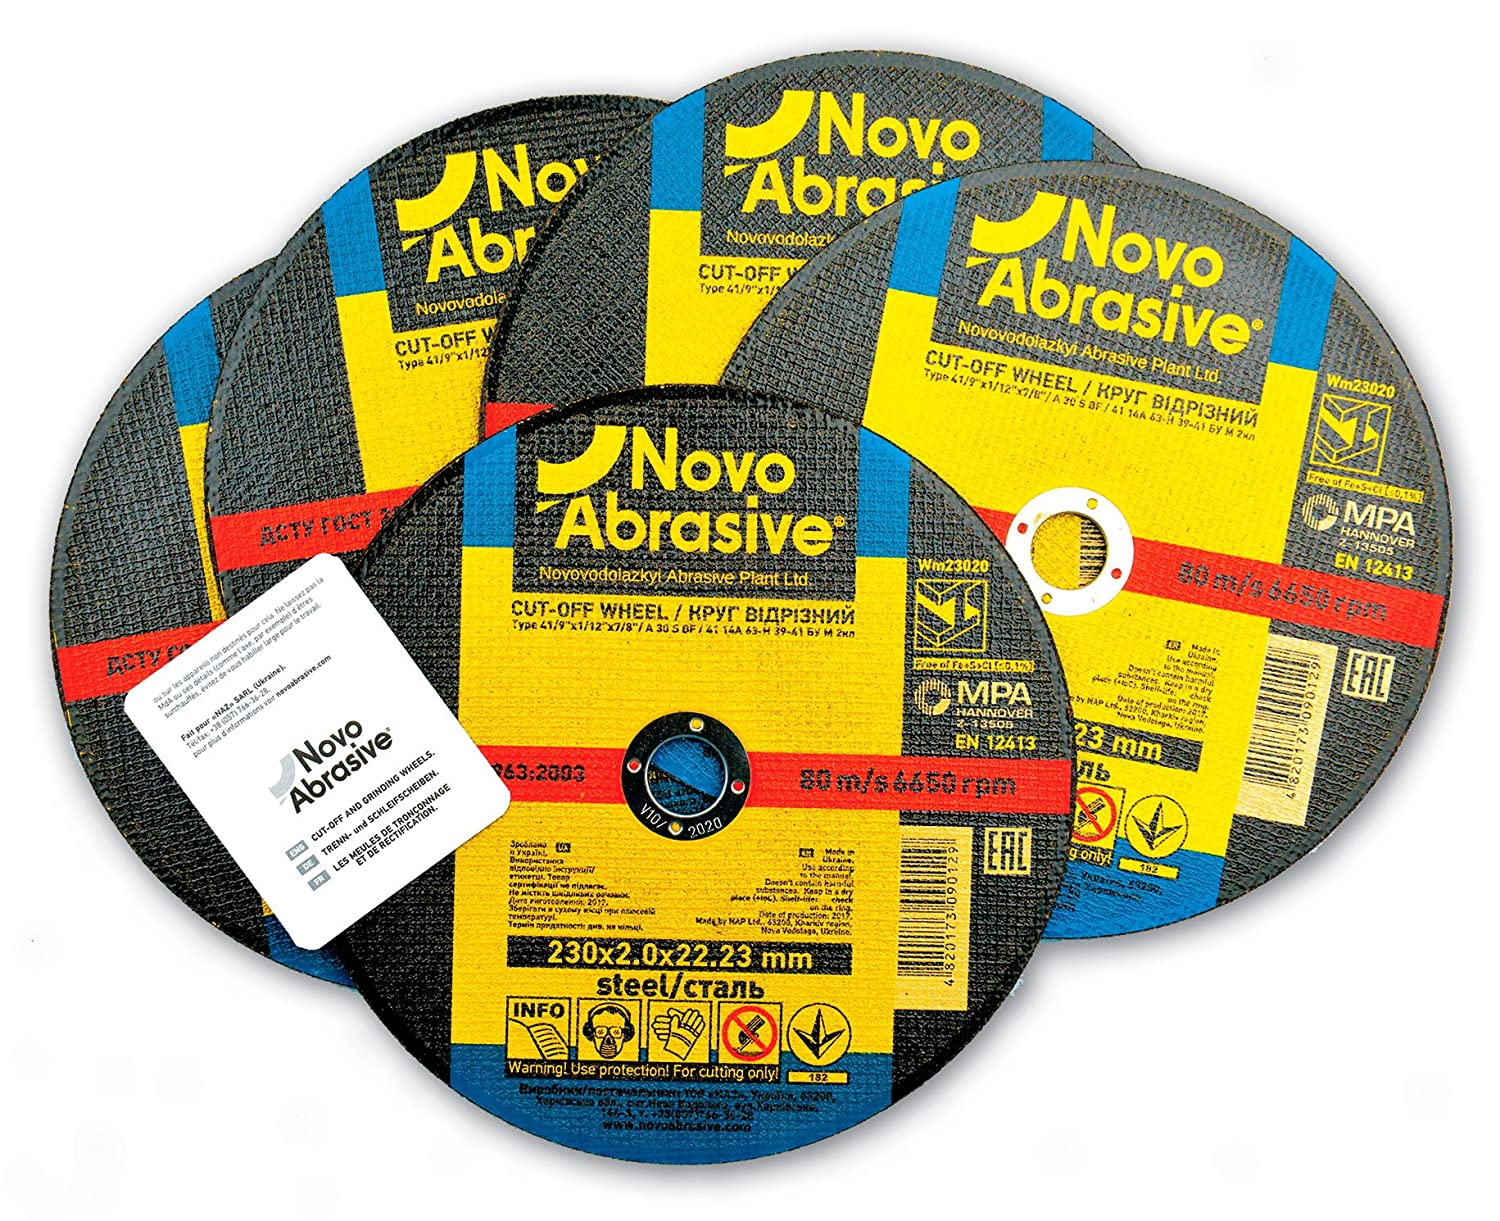 Pack of 10 PCS NOVOABRASIVE Metal Cutting Discs 125mm x 1.6mm for Angle Grinder Use for Cut Metal Steel and Non-Ferrous Metals Stainless Steel